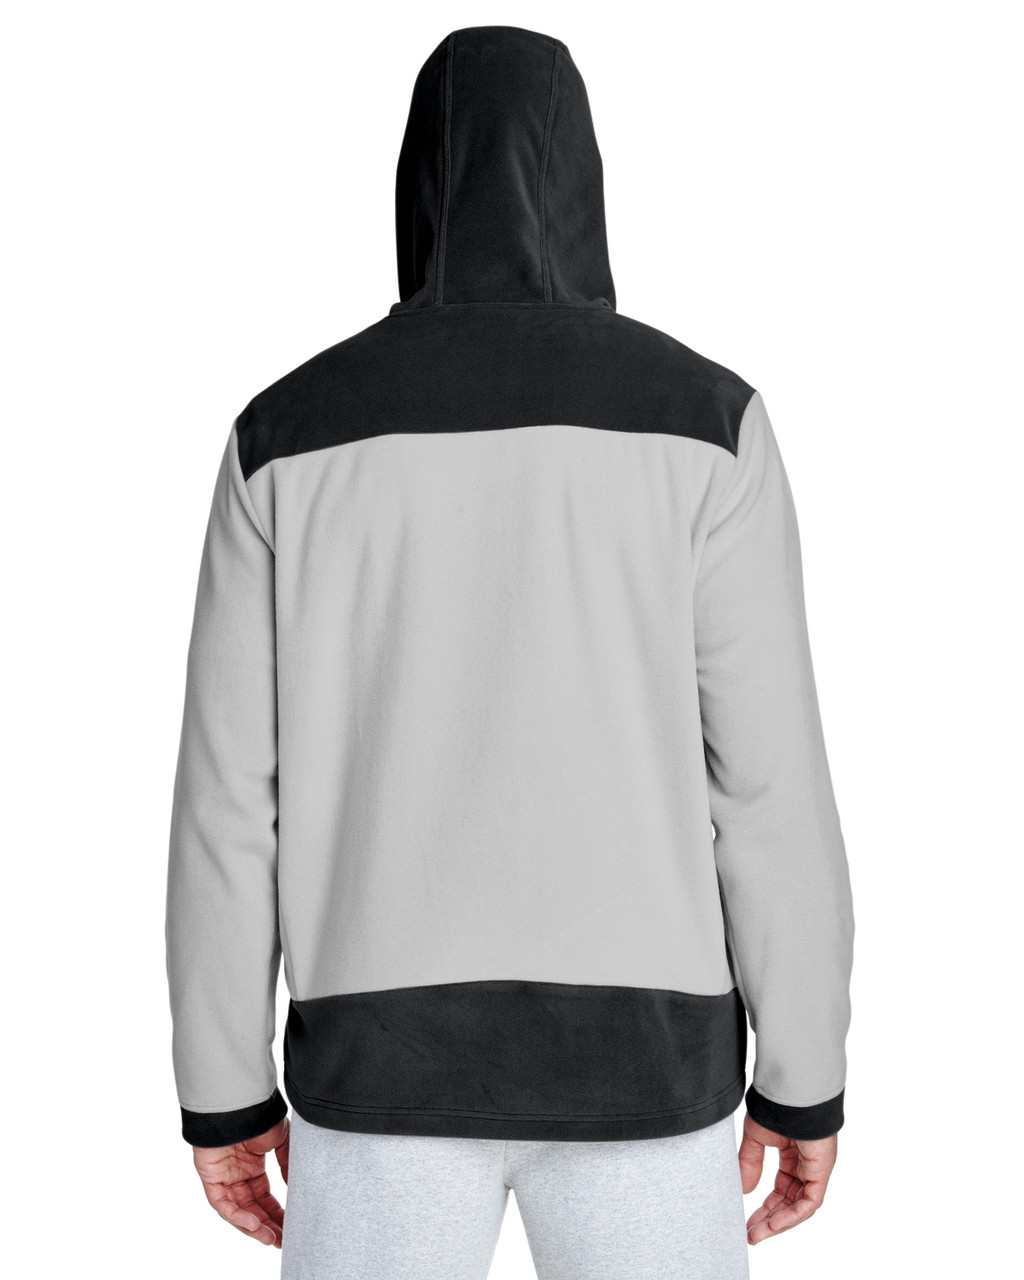 Black/Sport Silver-back TT94 Team 365 Rally Colourblock Microfleece Jacket